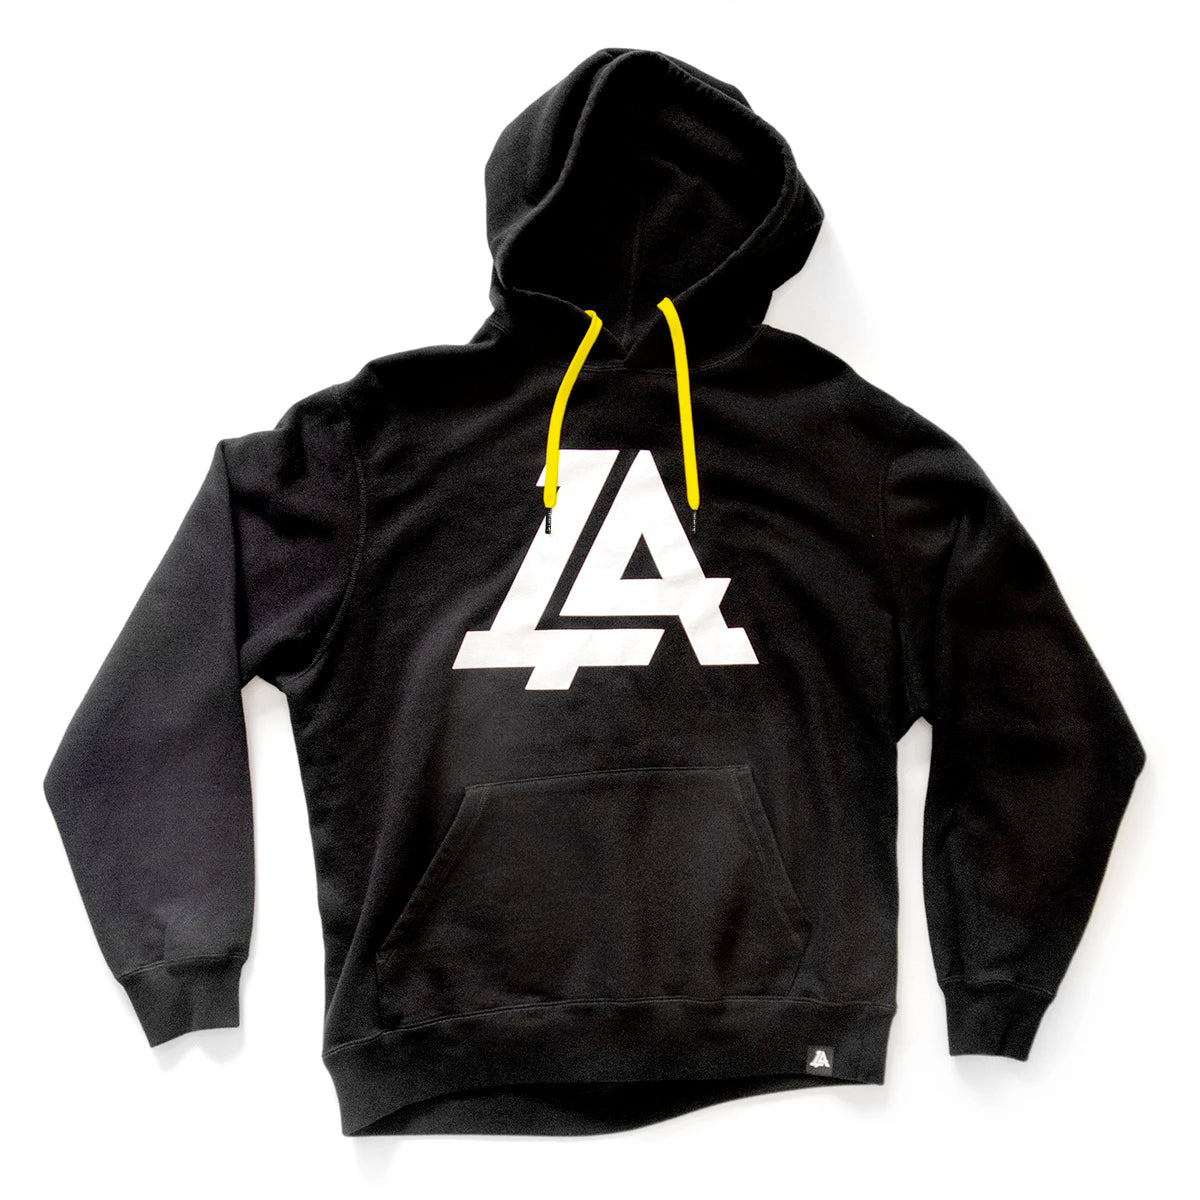 Lost Art Canada - black icon hoodie sweatshirt front view yellow strings